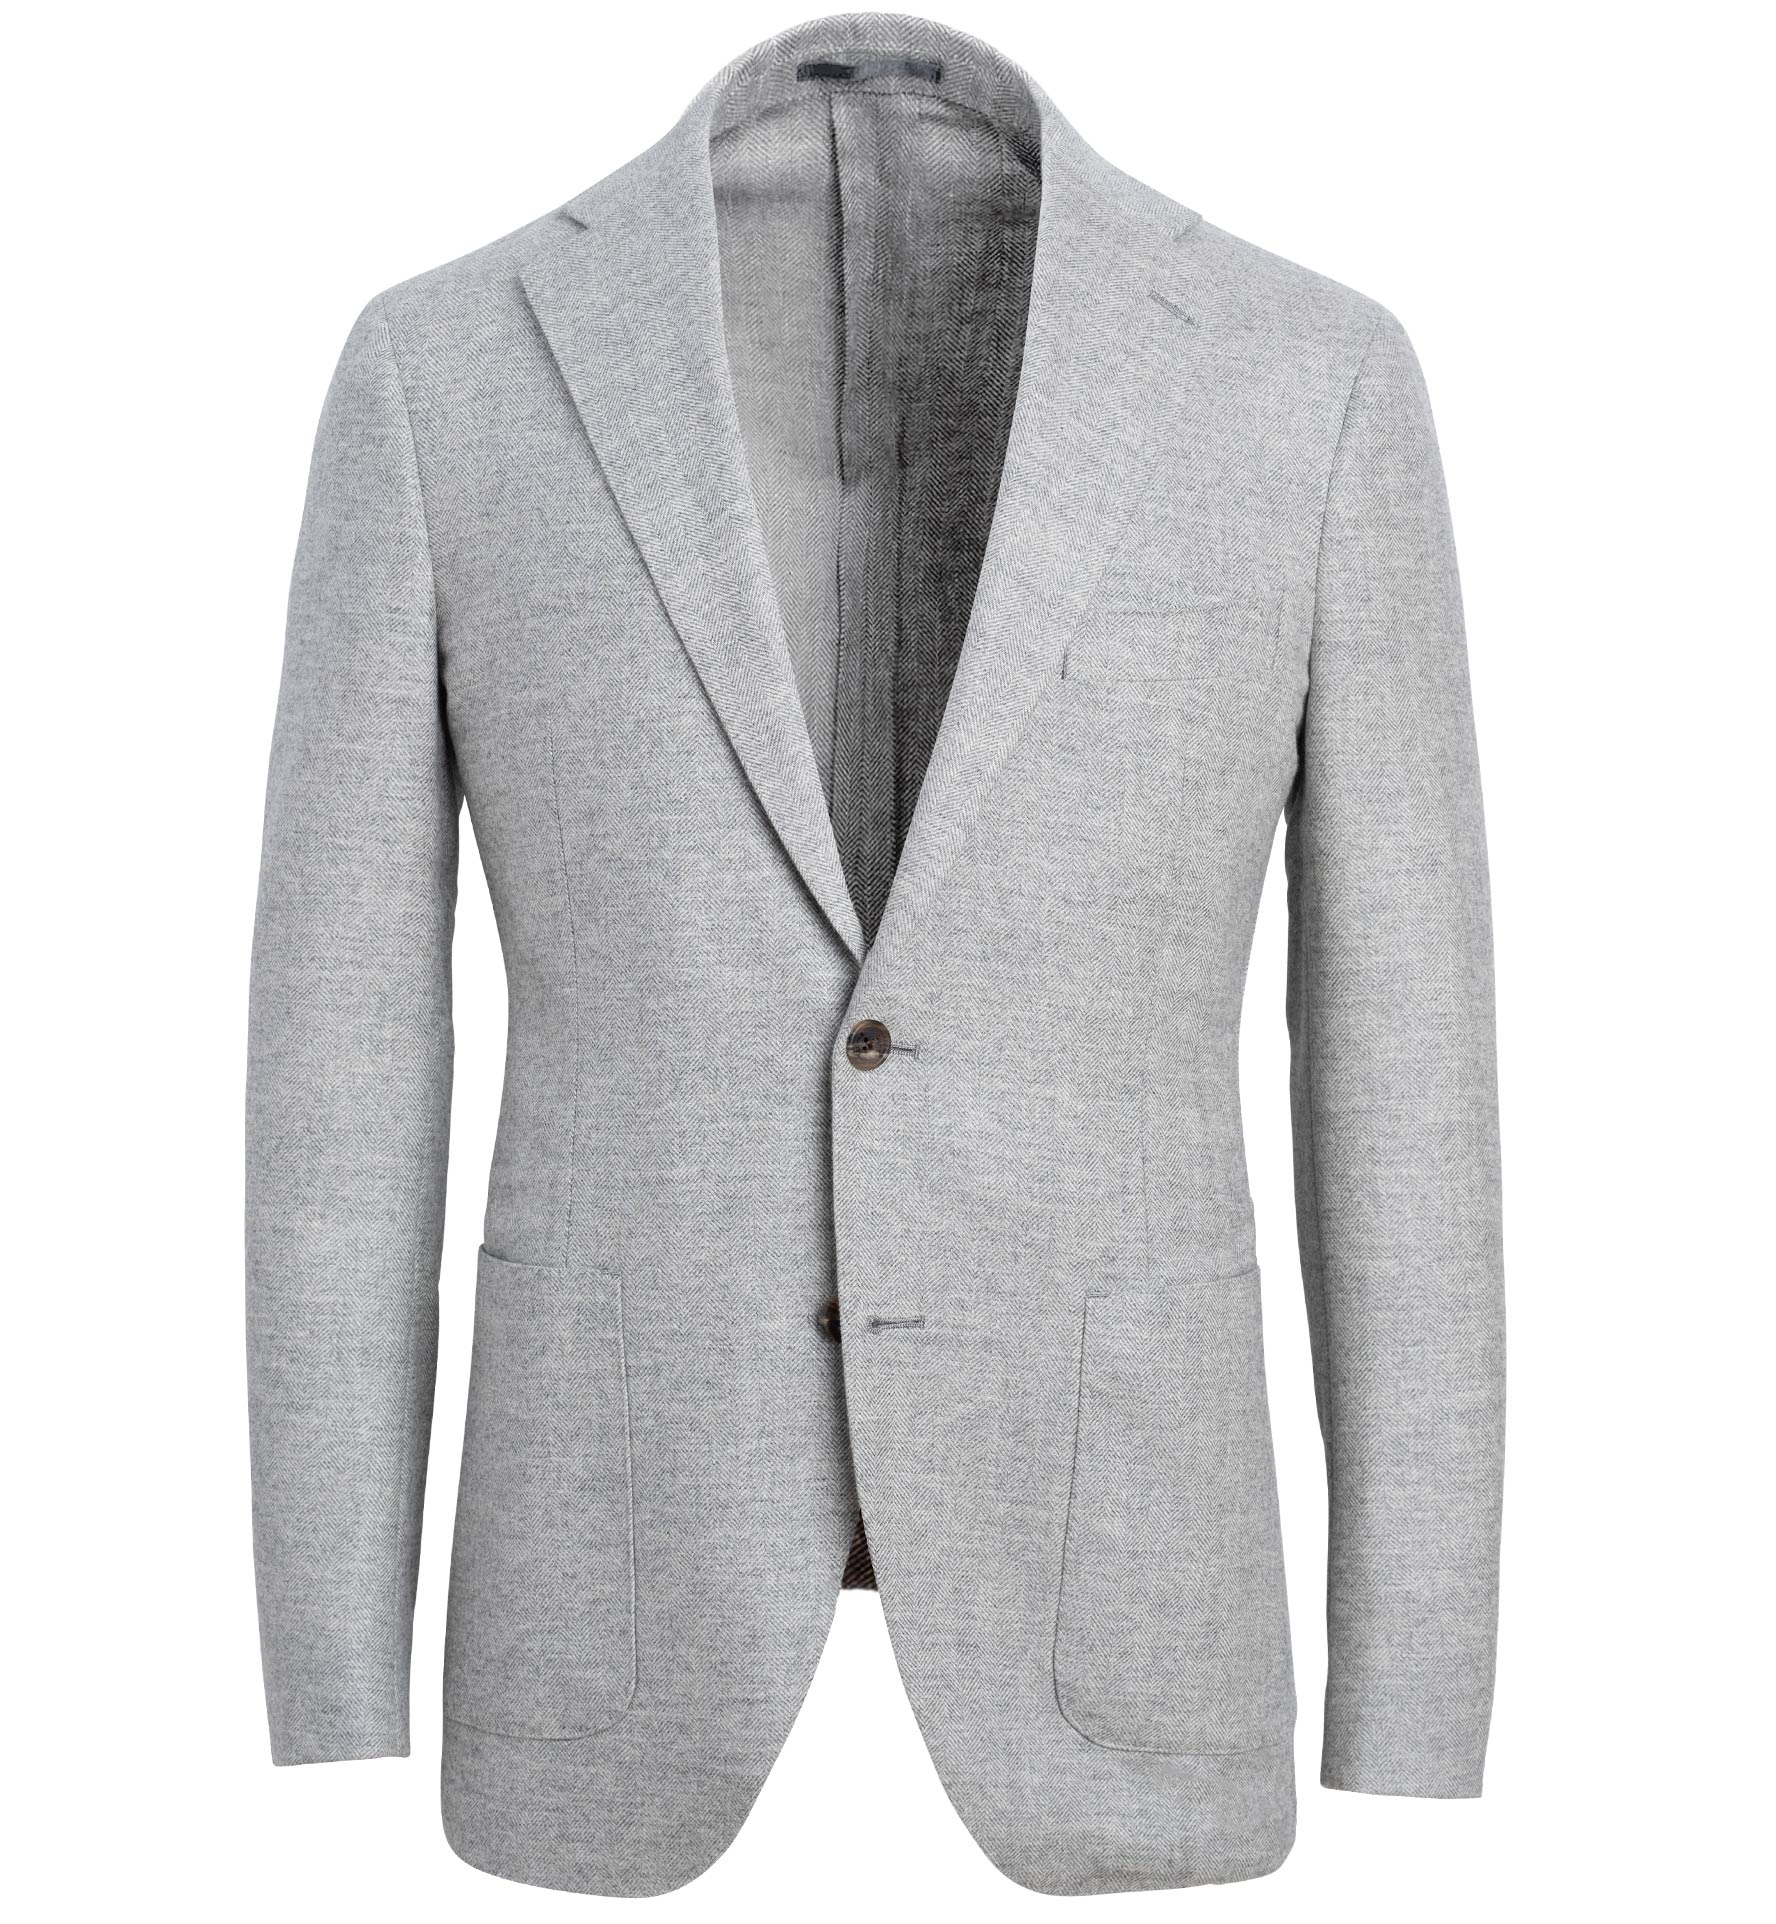 Zoom Image of Bedford Light Grey Wool and Cashmere Herringbone Jacket